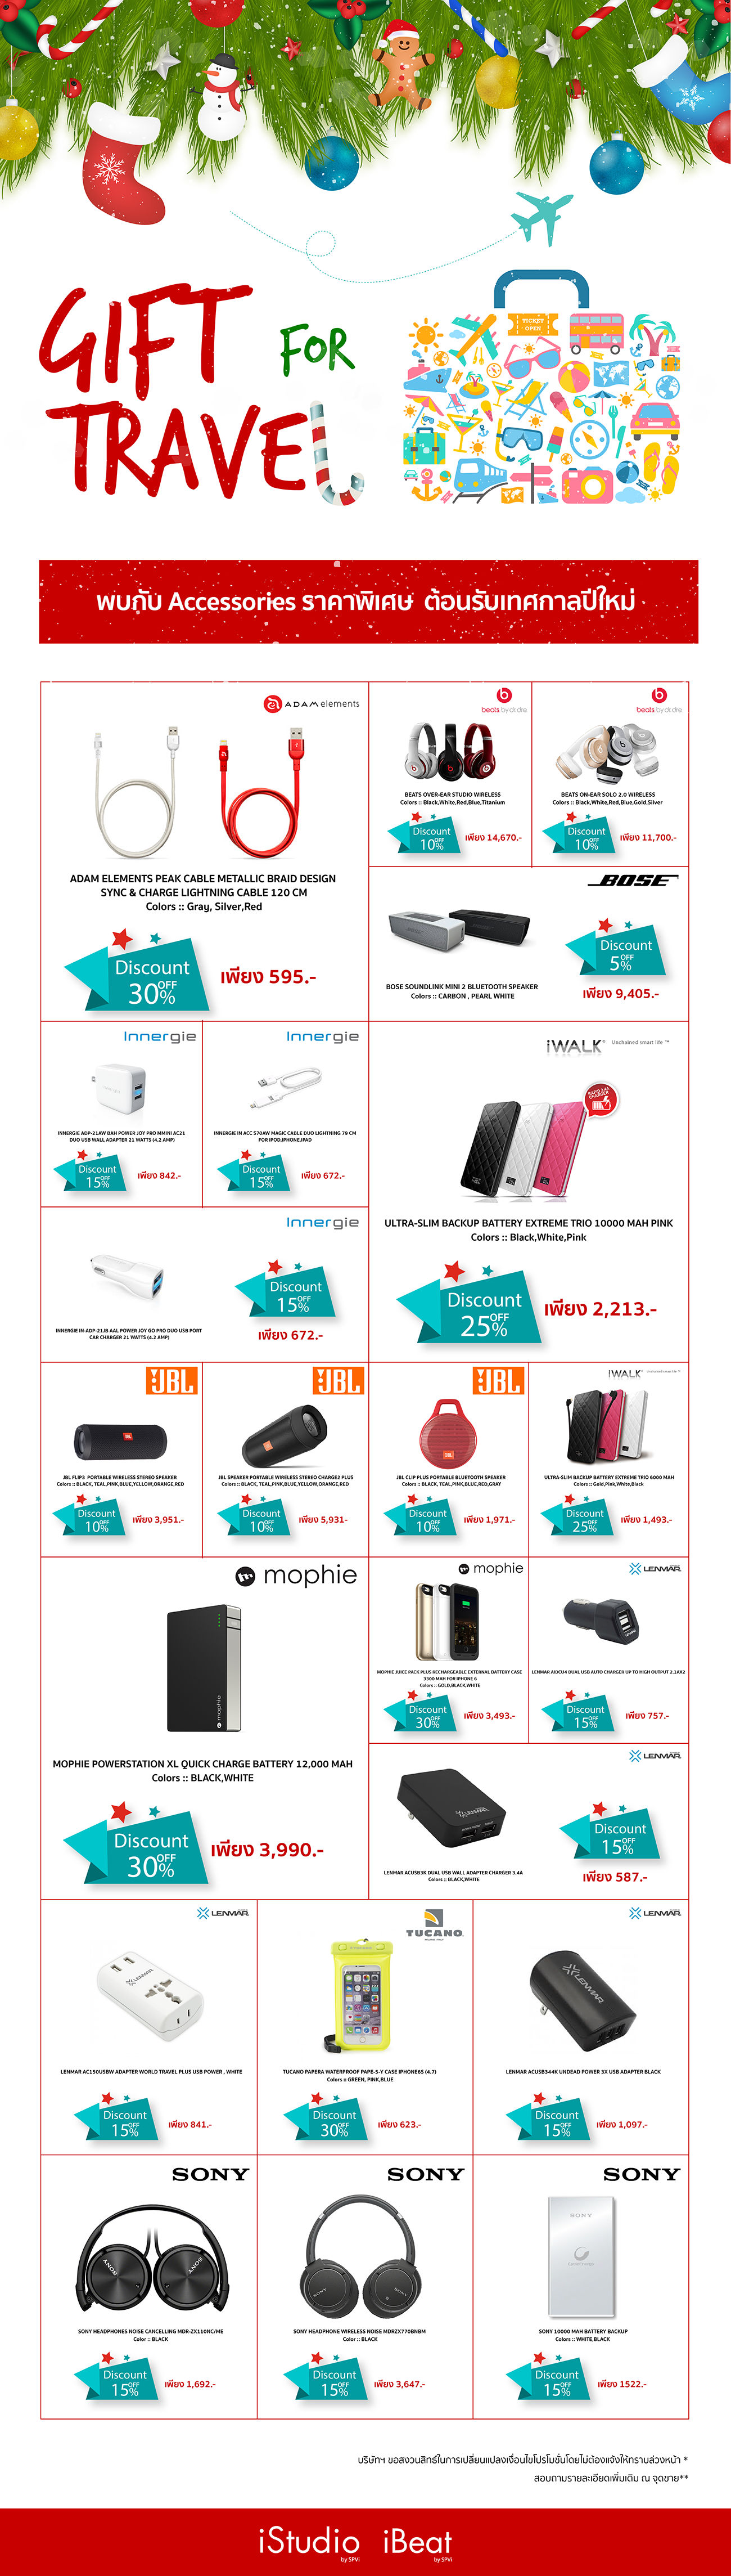 Gift-Promotion-2015-Travel-01